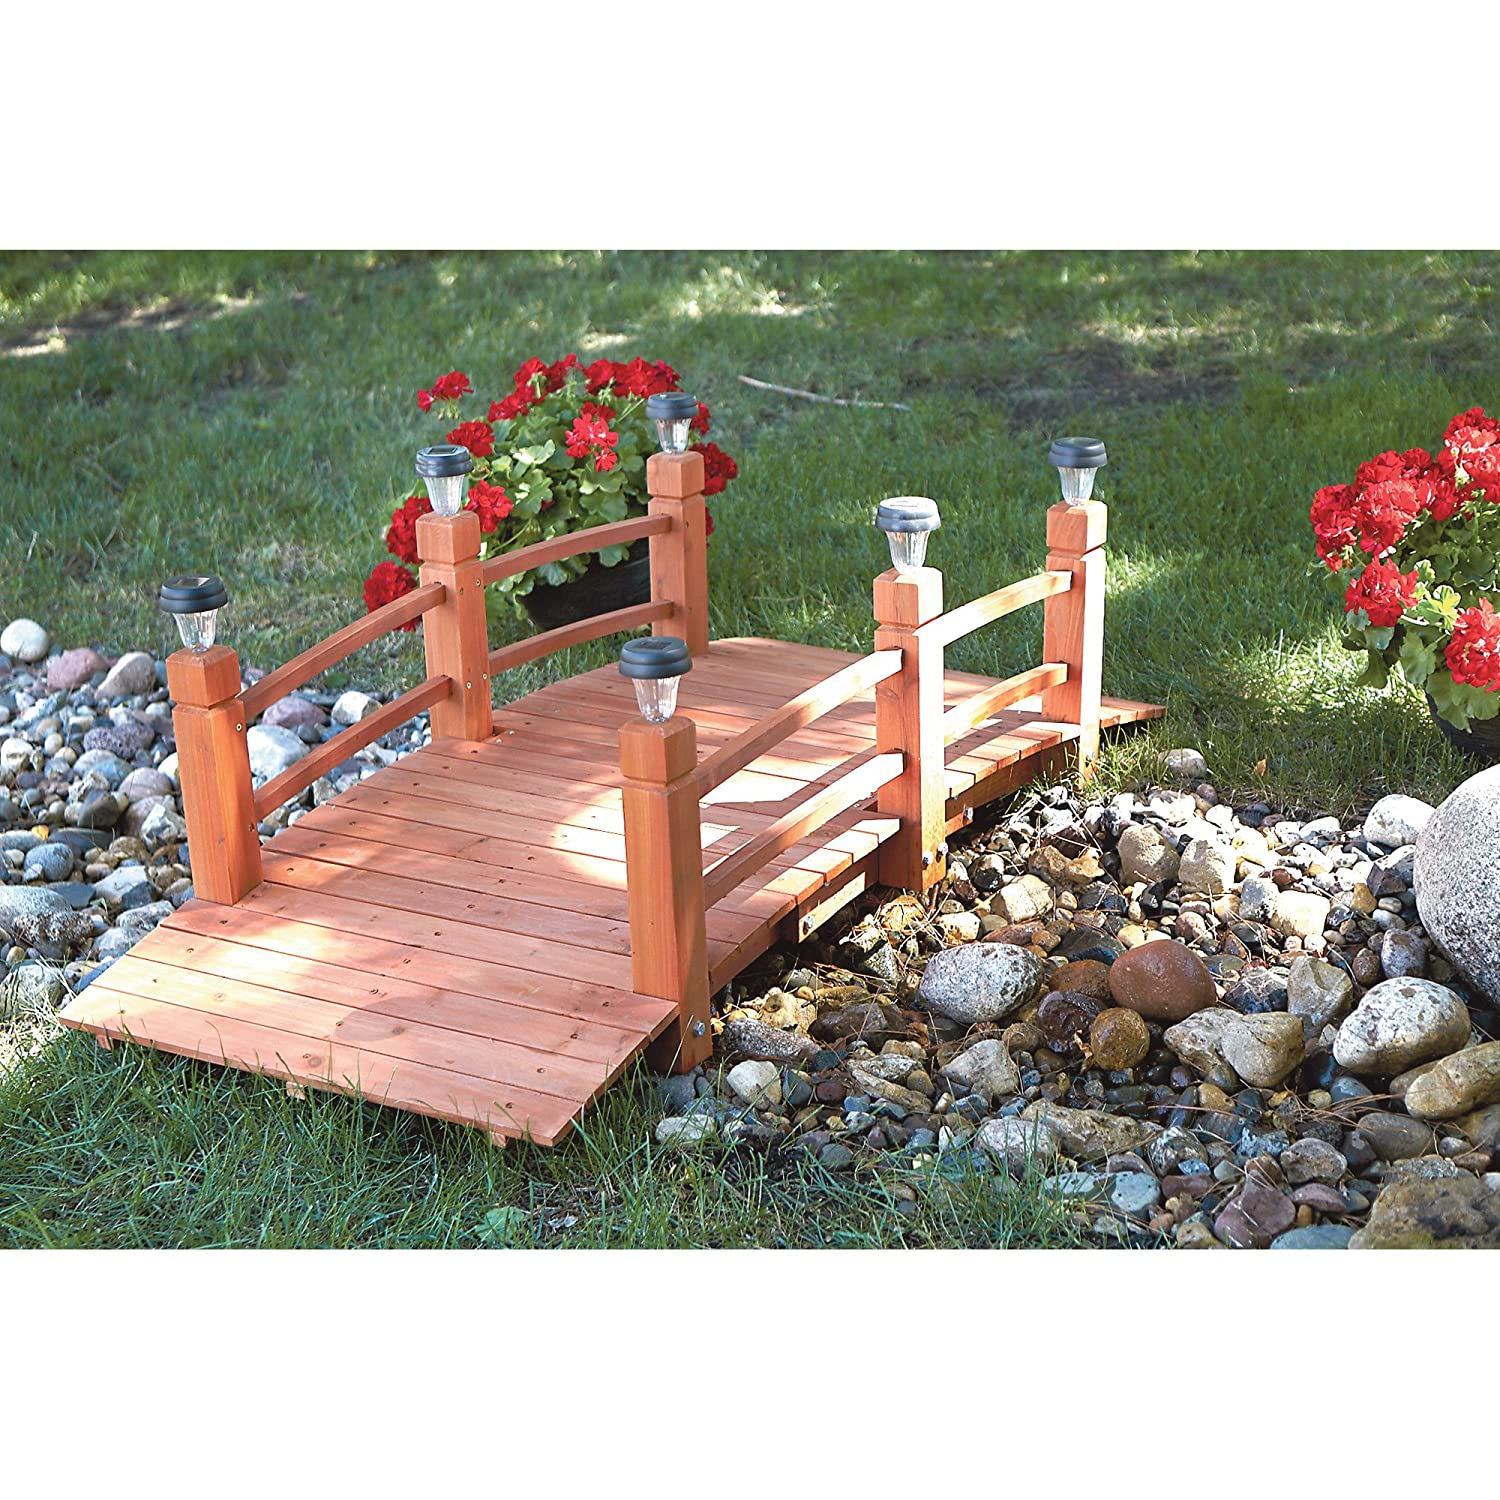 Garden designs with bridges and wishing wells landscaping ideas - Amazon Com Decorative Wood Bridge With Solar Lights 5ft Patio Lawn Garden